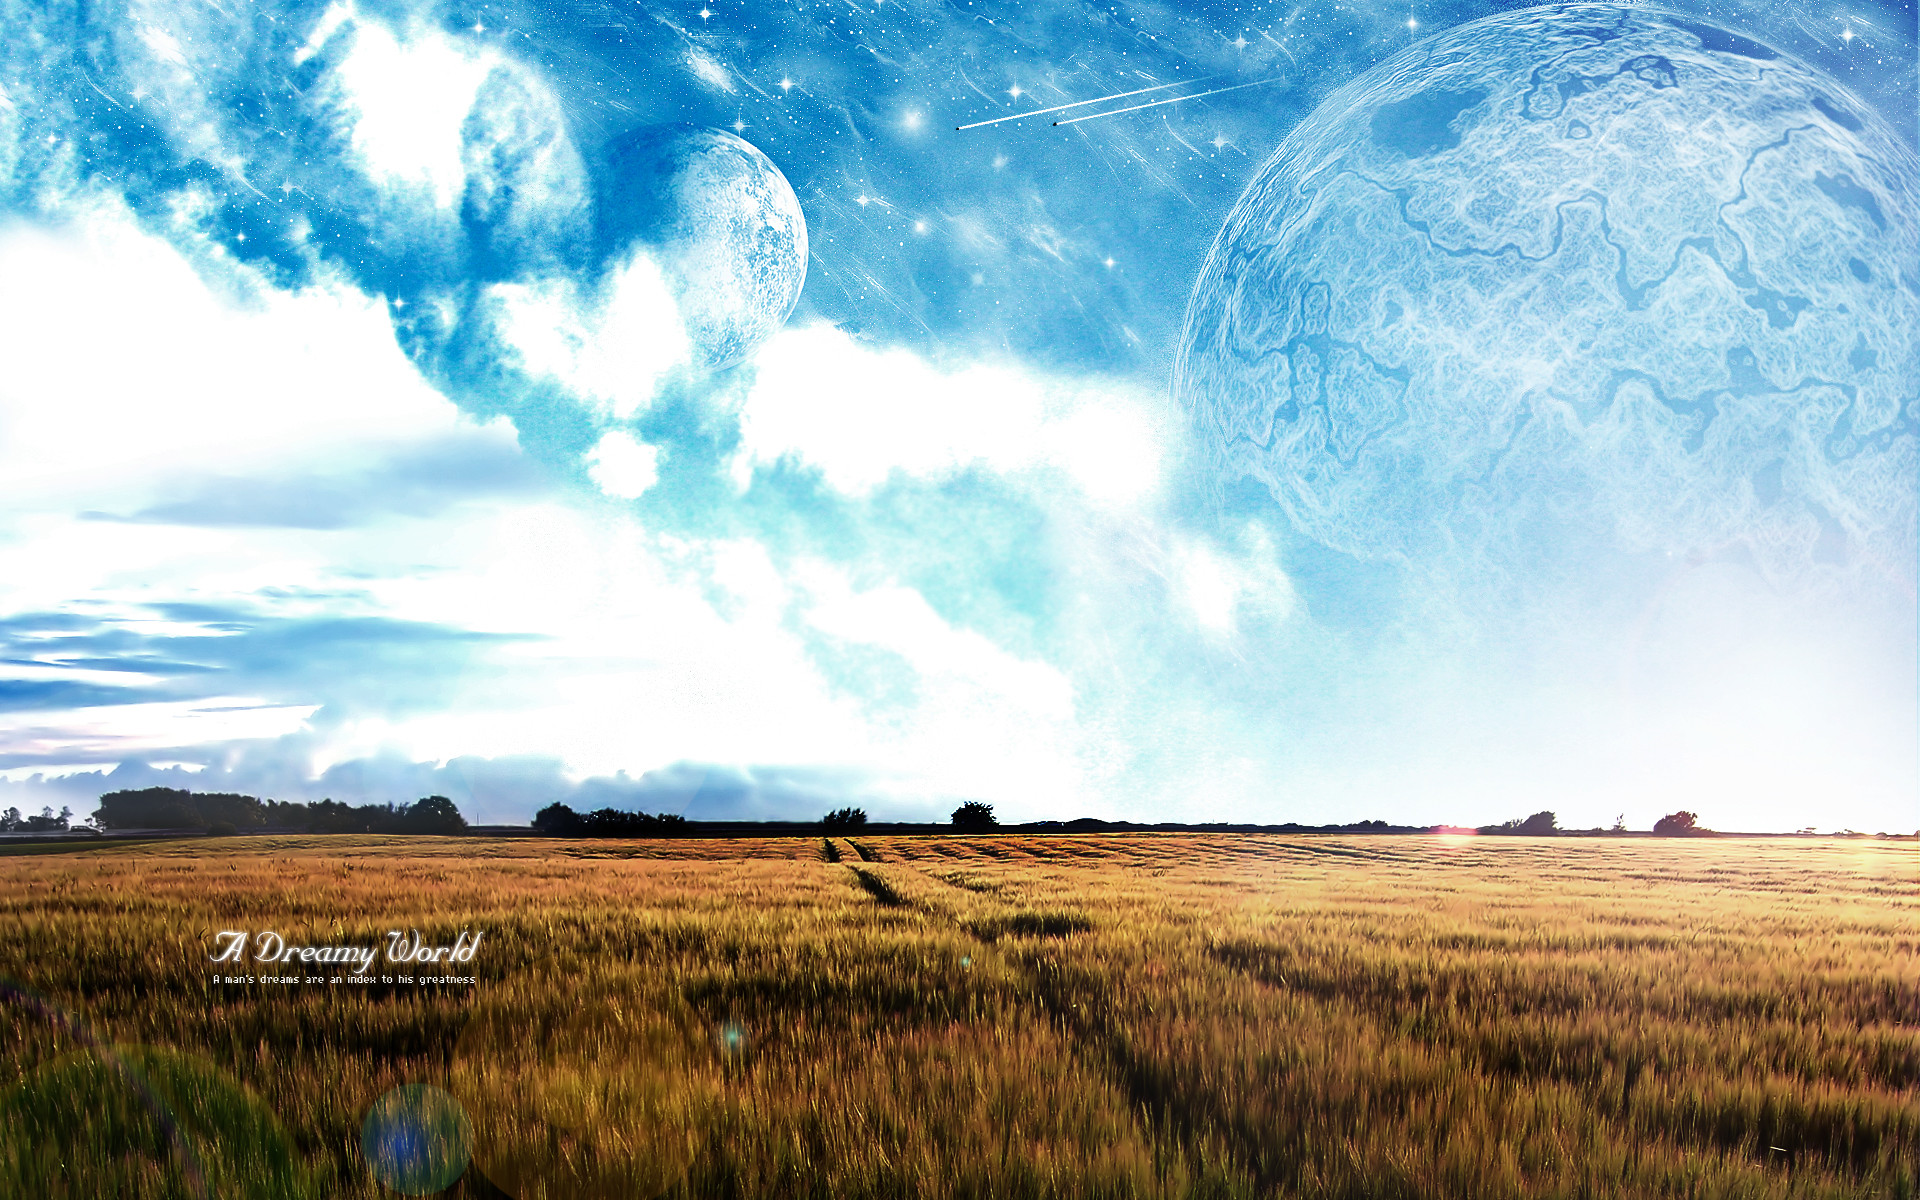 1920x1200 A dreamy world by bo0xVn A dreamy world by bo0xVn